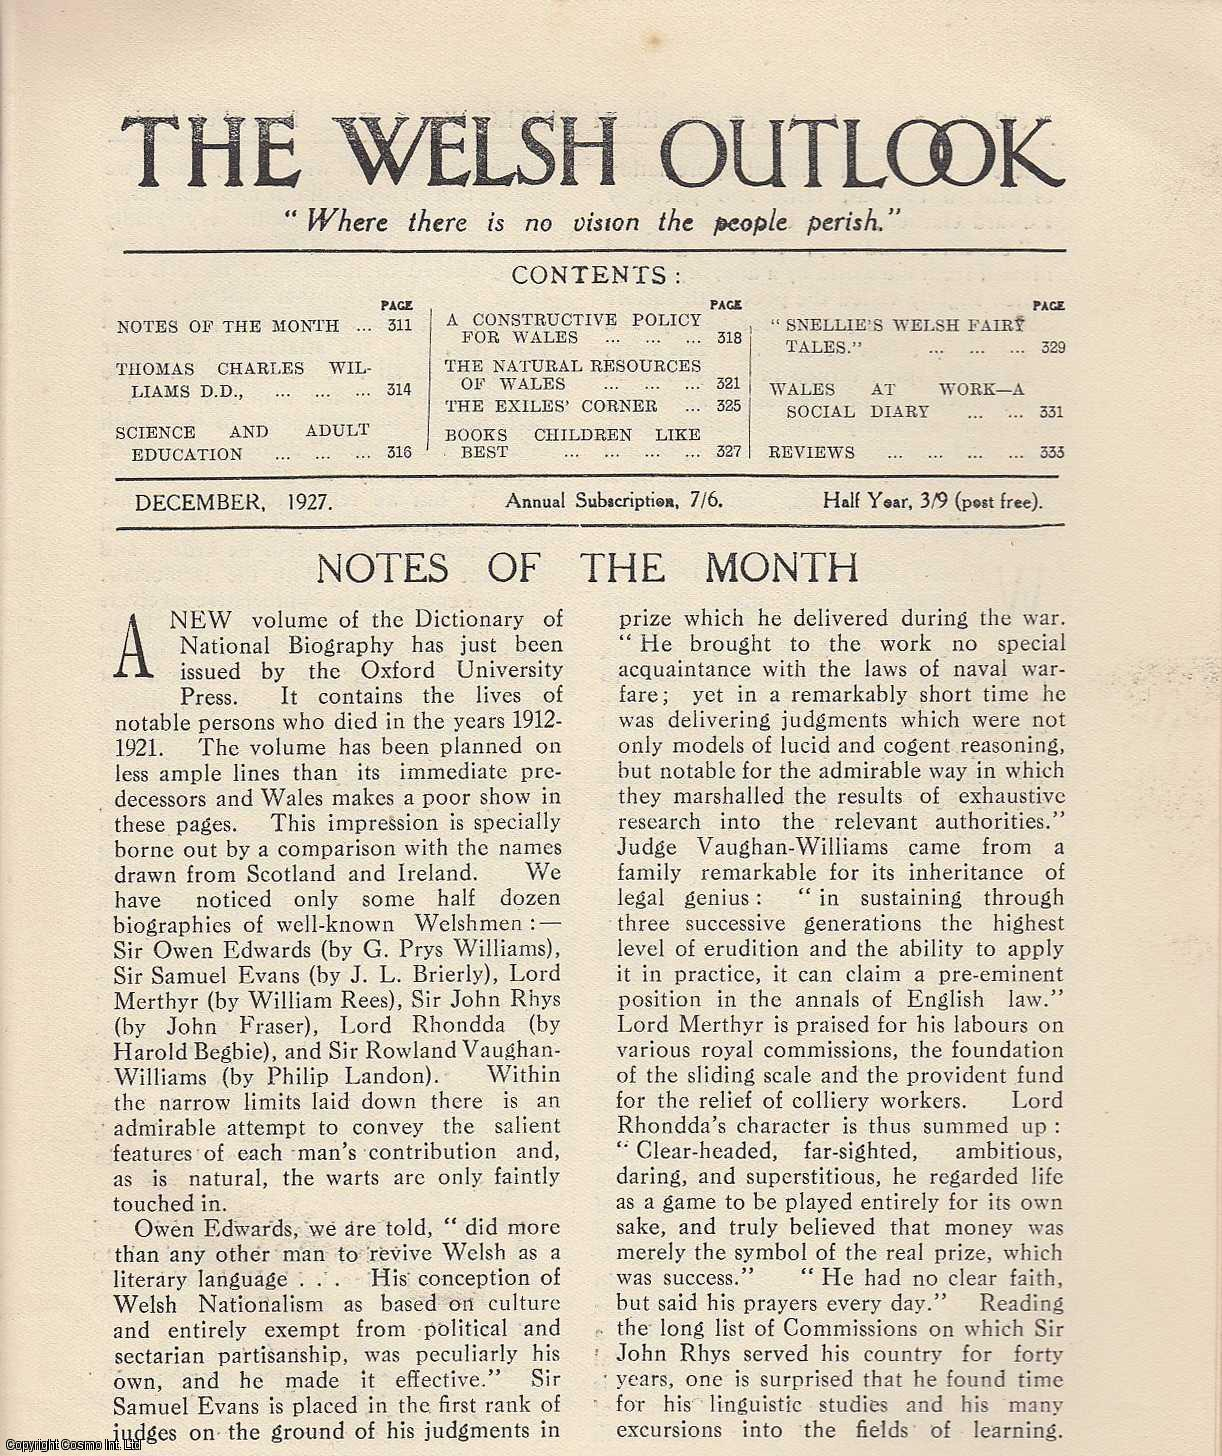 The Welsh Outlook. A Monthly Journal of National Social Progress. December, 1927. Contains; Thomas Charles Williams, D.D. by Rev. John Roberts; Science and Adult Education by C.A. Edwards; A Constructive Policy for Wales by T.P. Ellis; The Natural Resources of Wales by F.J. North; The Exile's Corner: Hugh Jones - Prisoner and Pioneer; Books Children like best: An Enquiry by E.T. Owen & J. Lloyd Jones; S'Nellie's Welsh Fairy Tales: The Old Conjurer by Eleanor Boniface; Wales at Work - A Social Diary by Rev. Gwilym Davies., Thomas Jones (Editor)